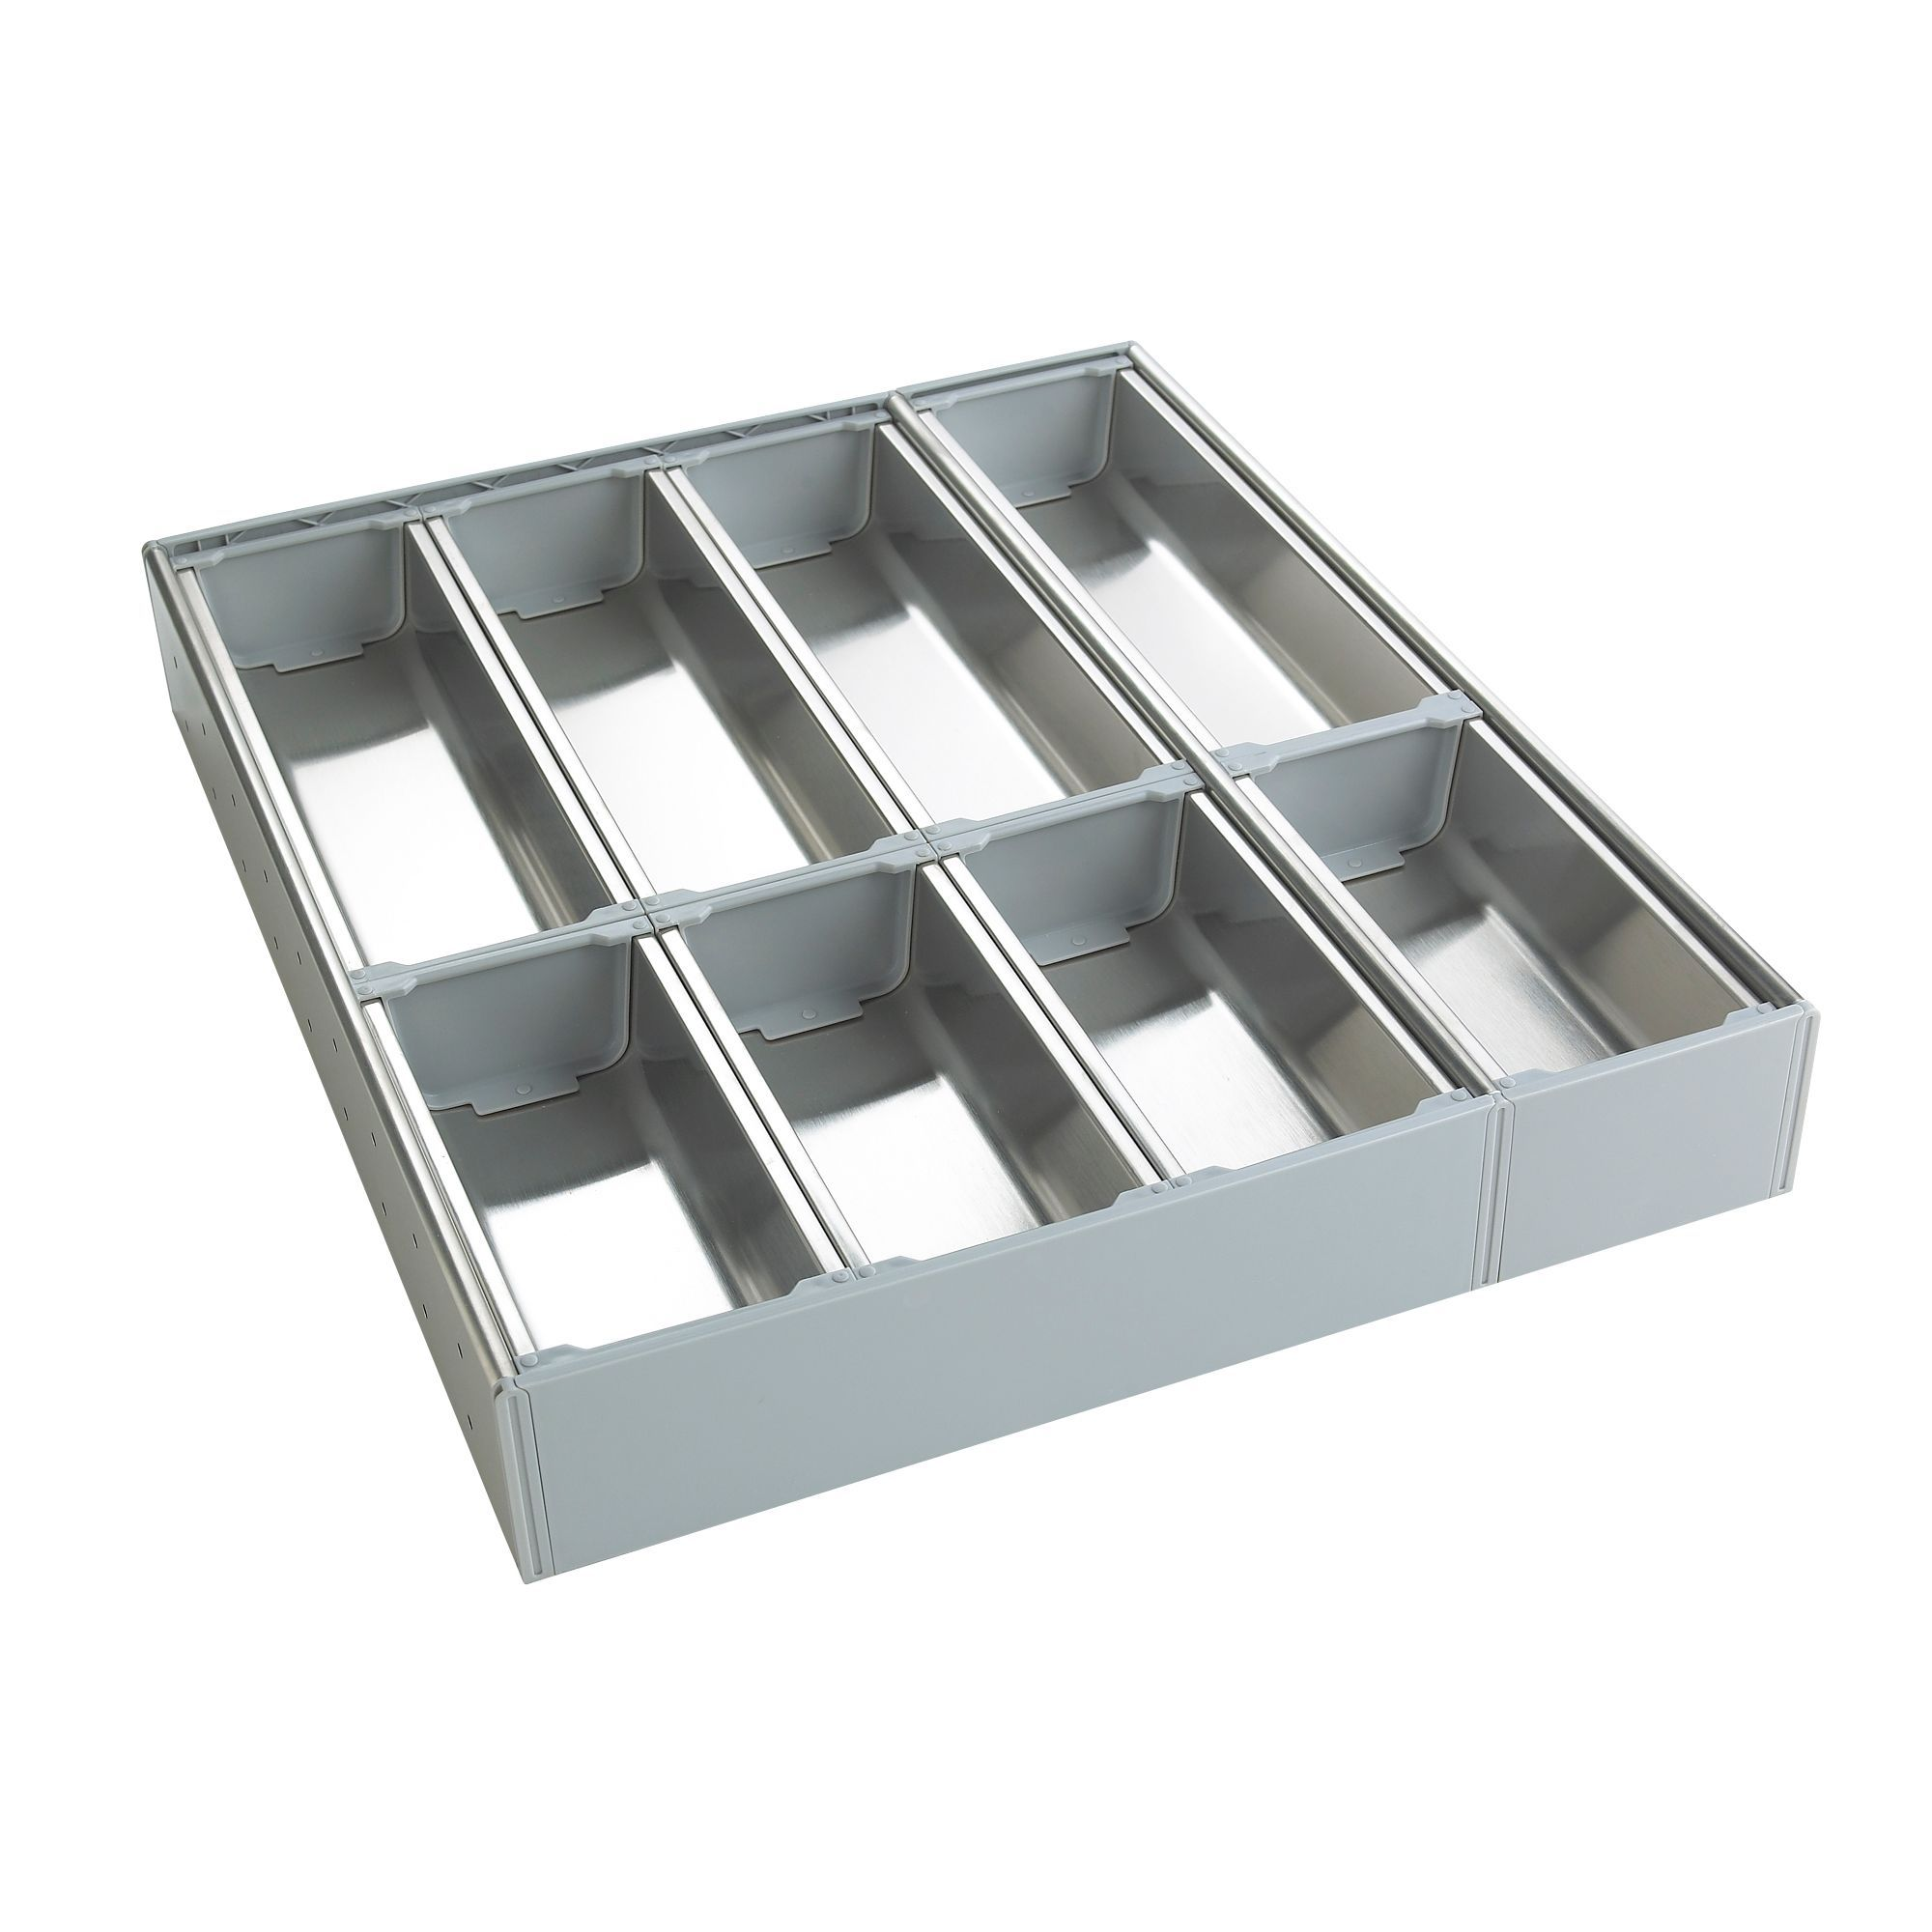 Cooke Lewis Silver Stainless Steel Kitchen Utensil Tray Departments Diy At B Q